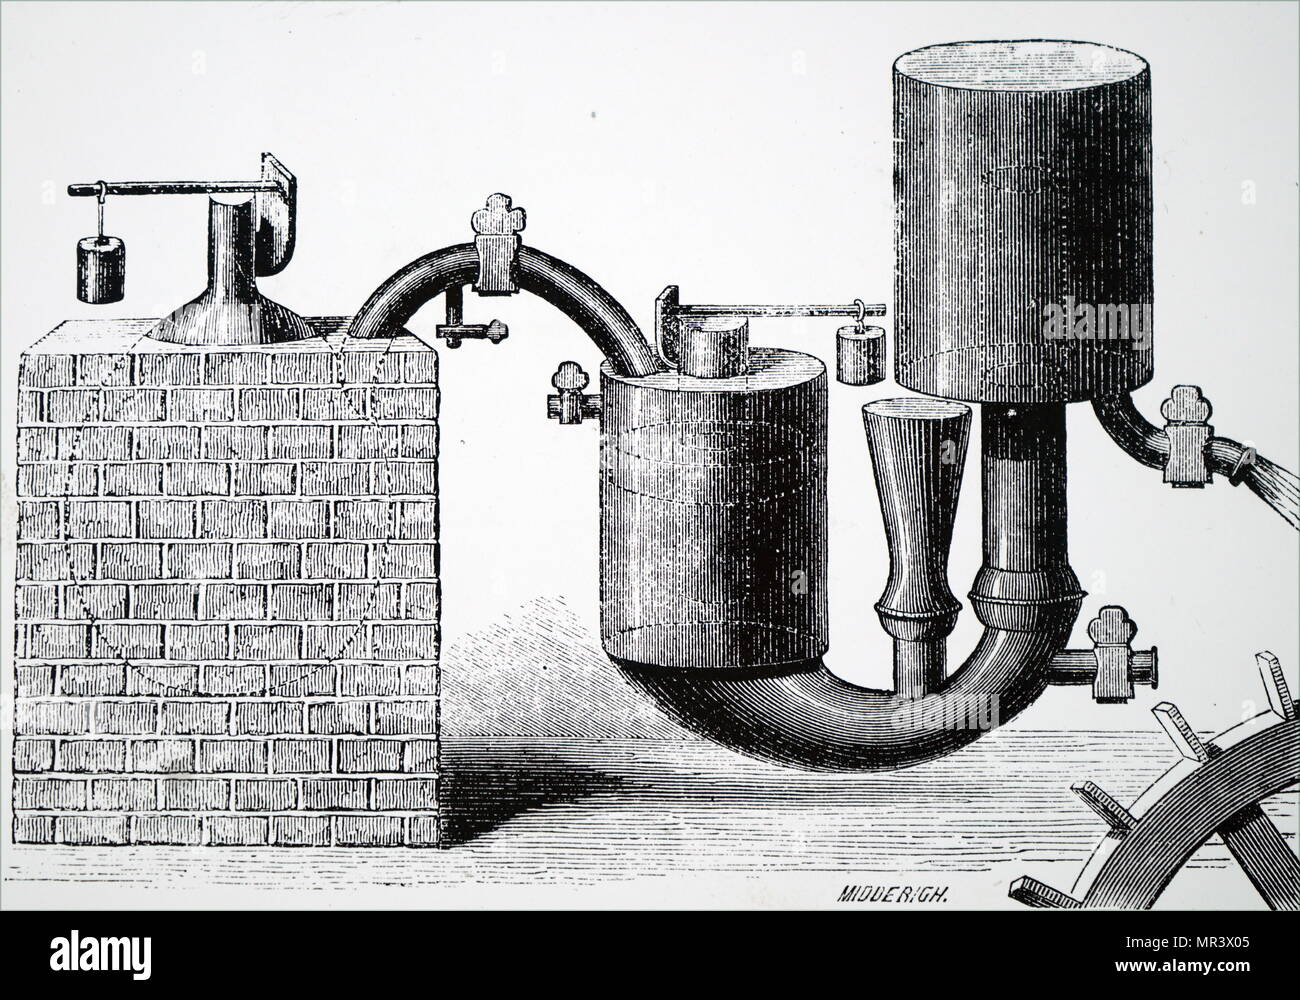 hight resolution of illustration depicting papin s steam engine 1707 for pumping water from mines it was the first engine to use the safety valve he had invented